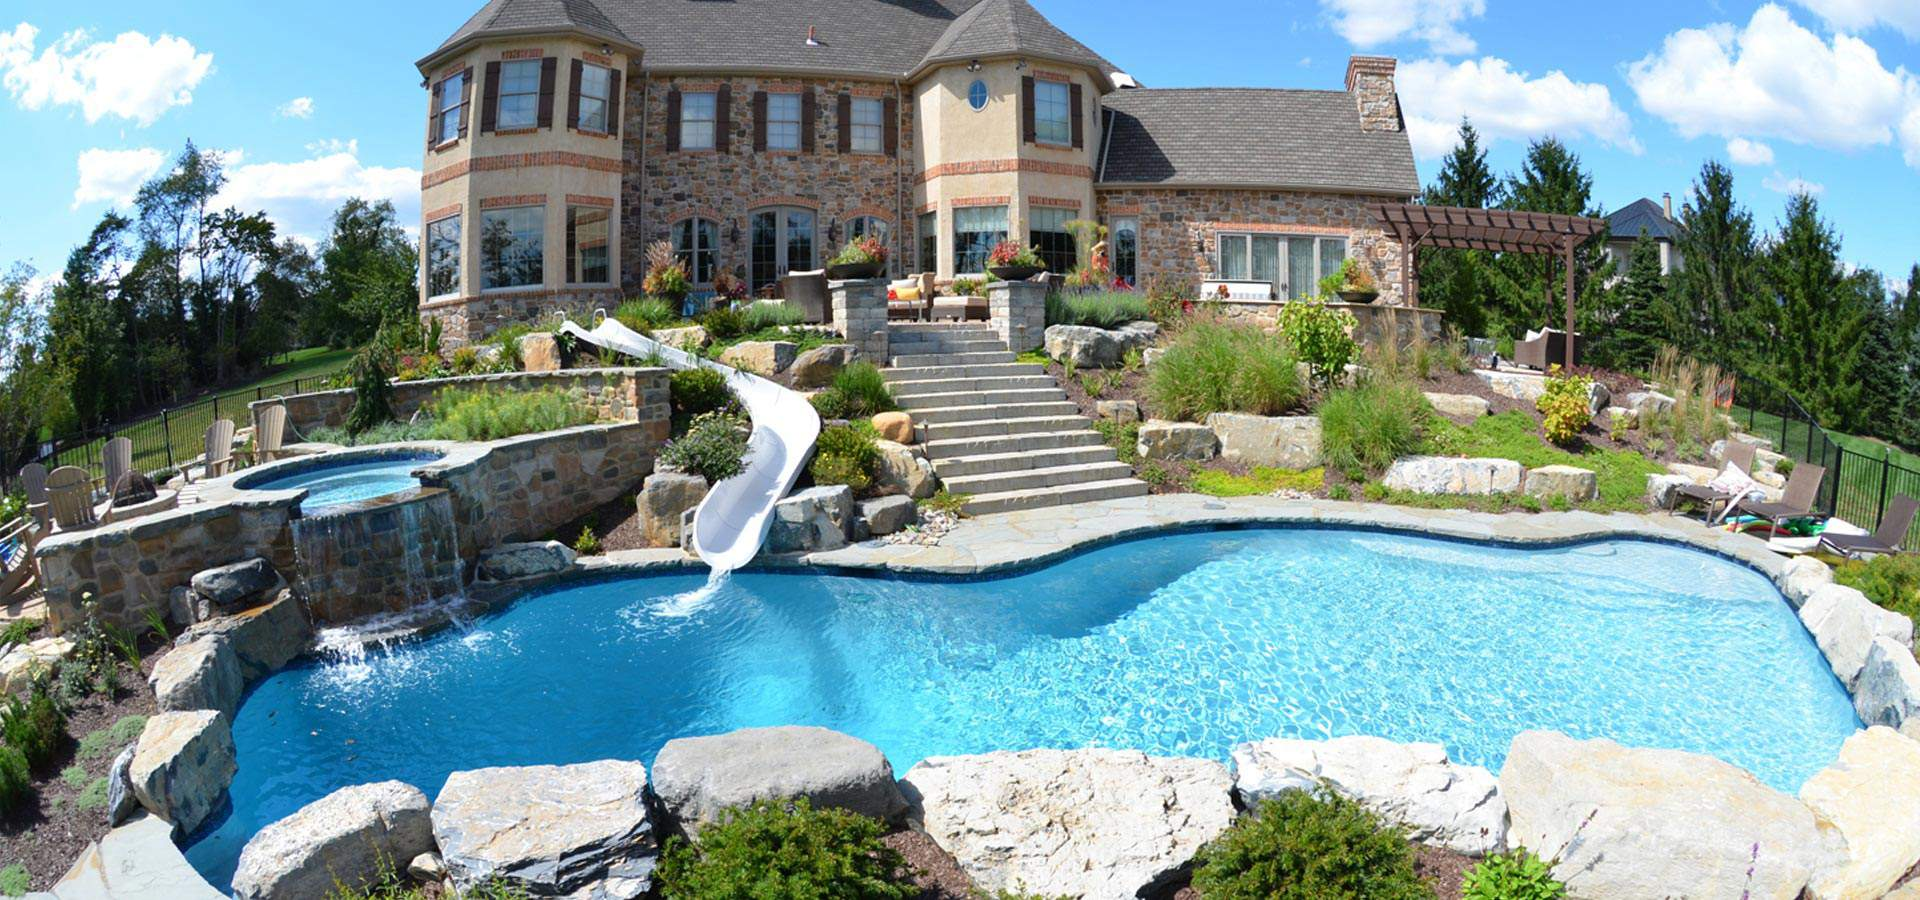 1 pool builder in lehigh valley pa best inground pools for Pool gallery